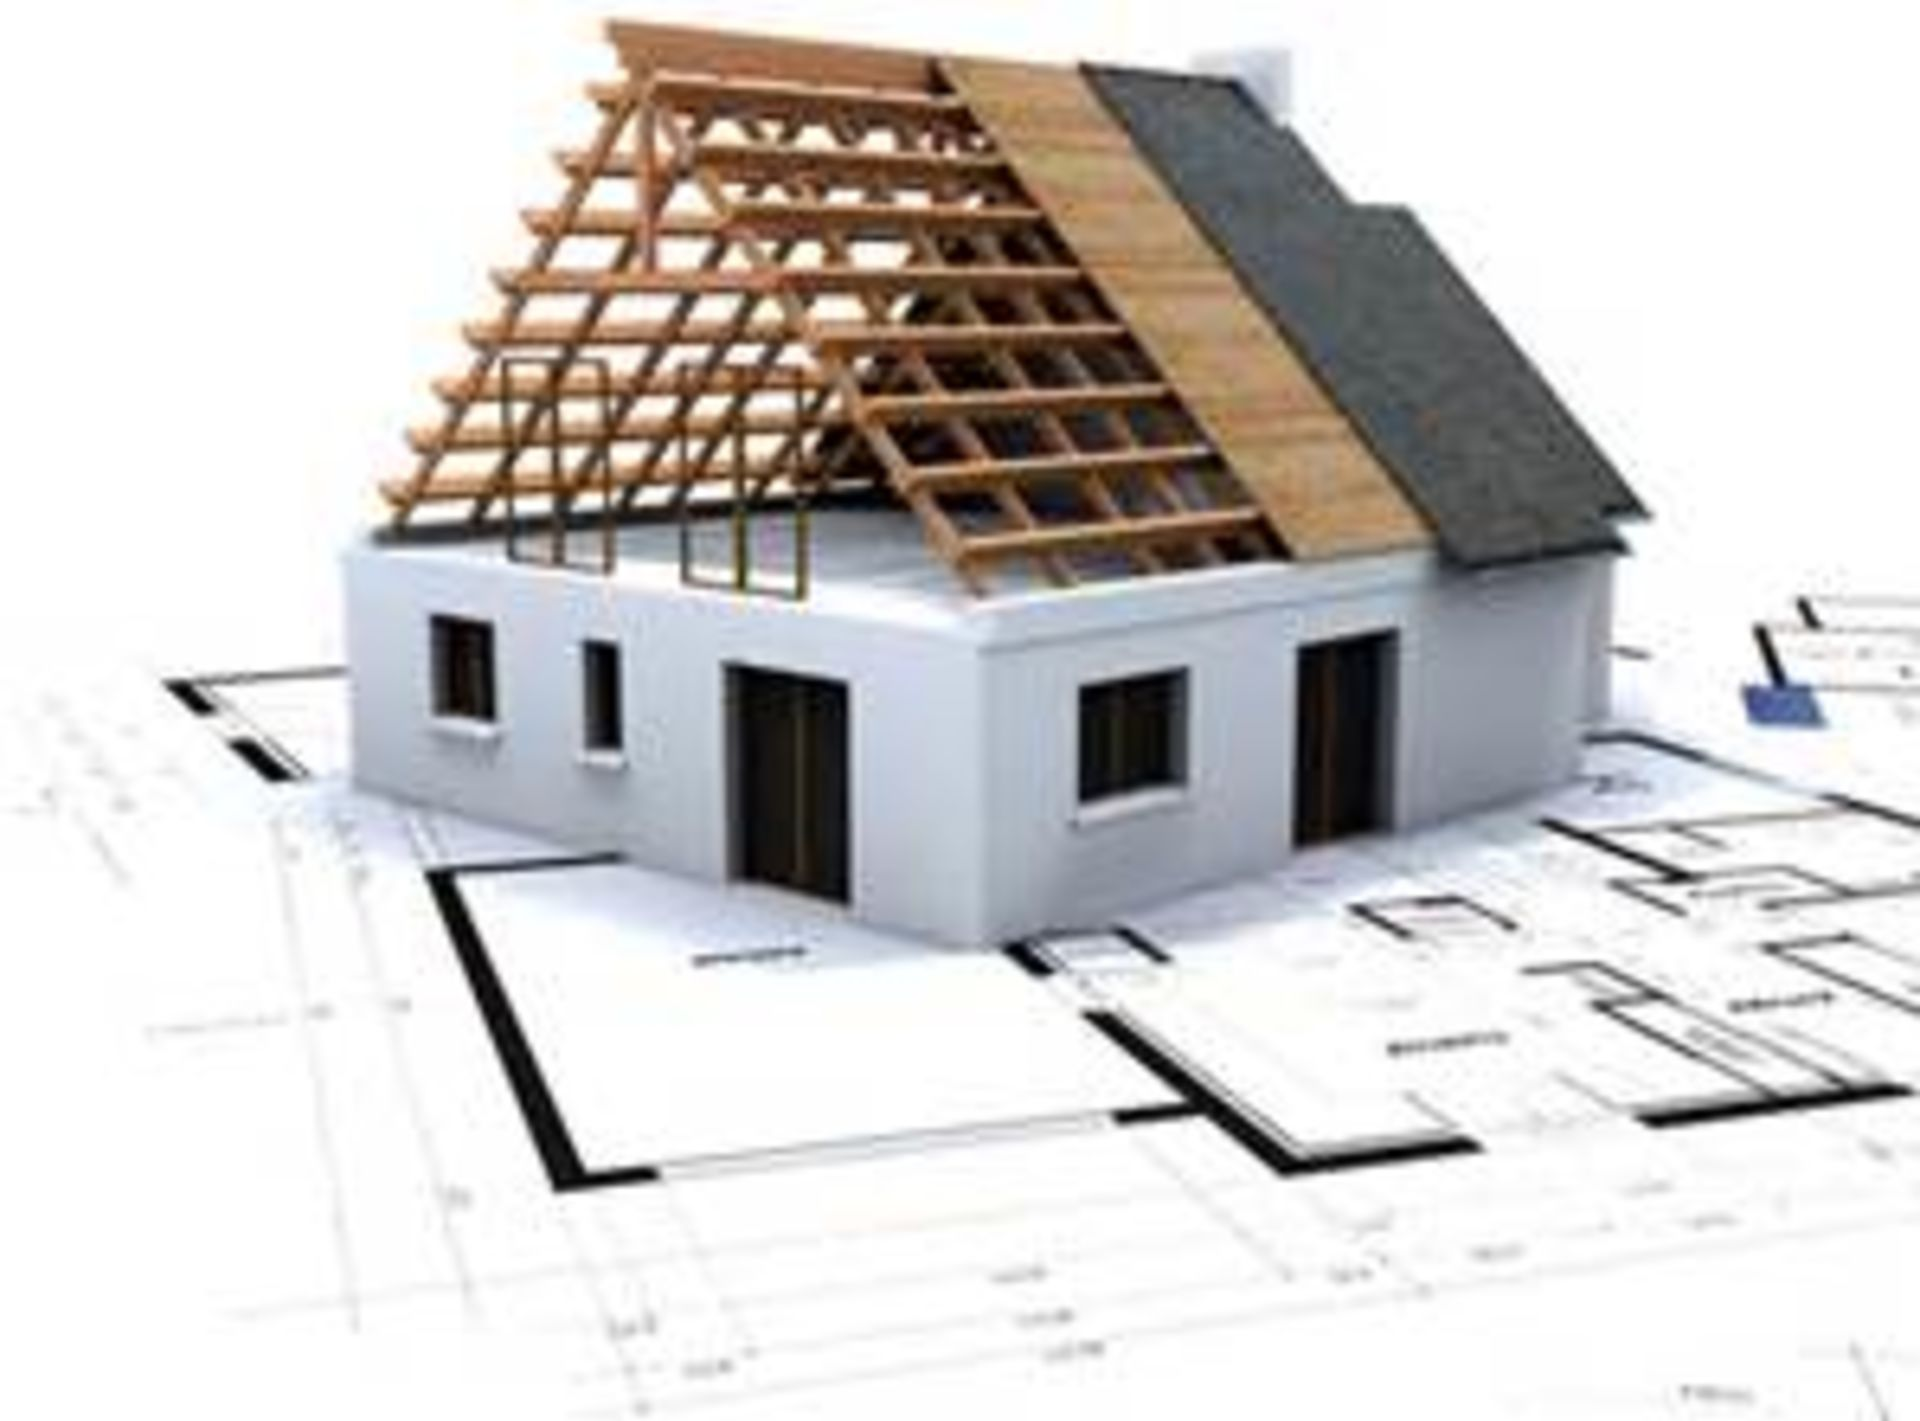 5 THINGS TO CONSIDER WHEN OPTING FOR NEW HOME CONSTRUCTION